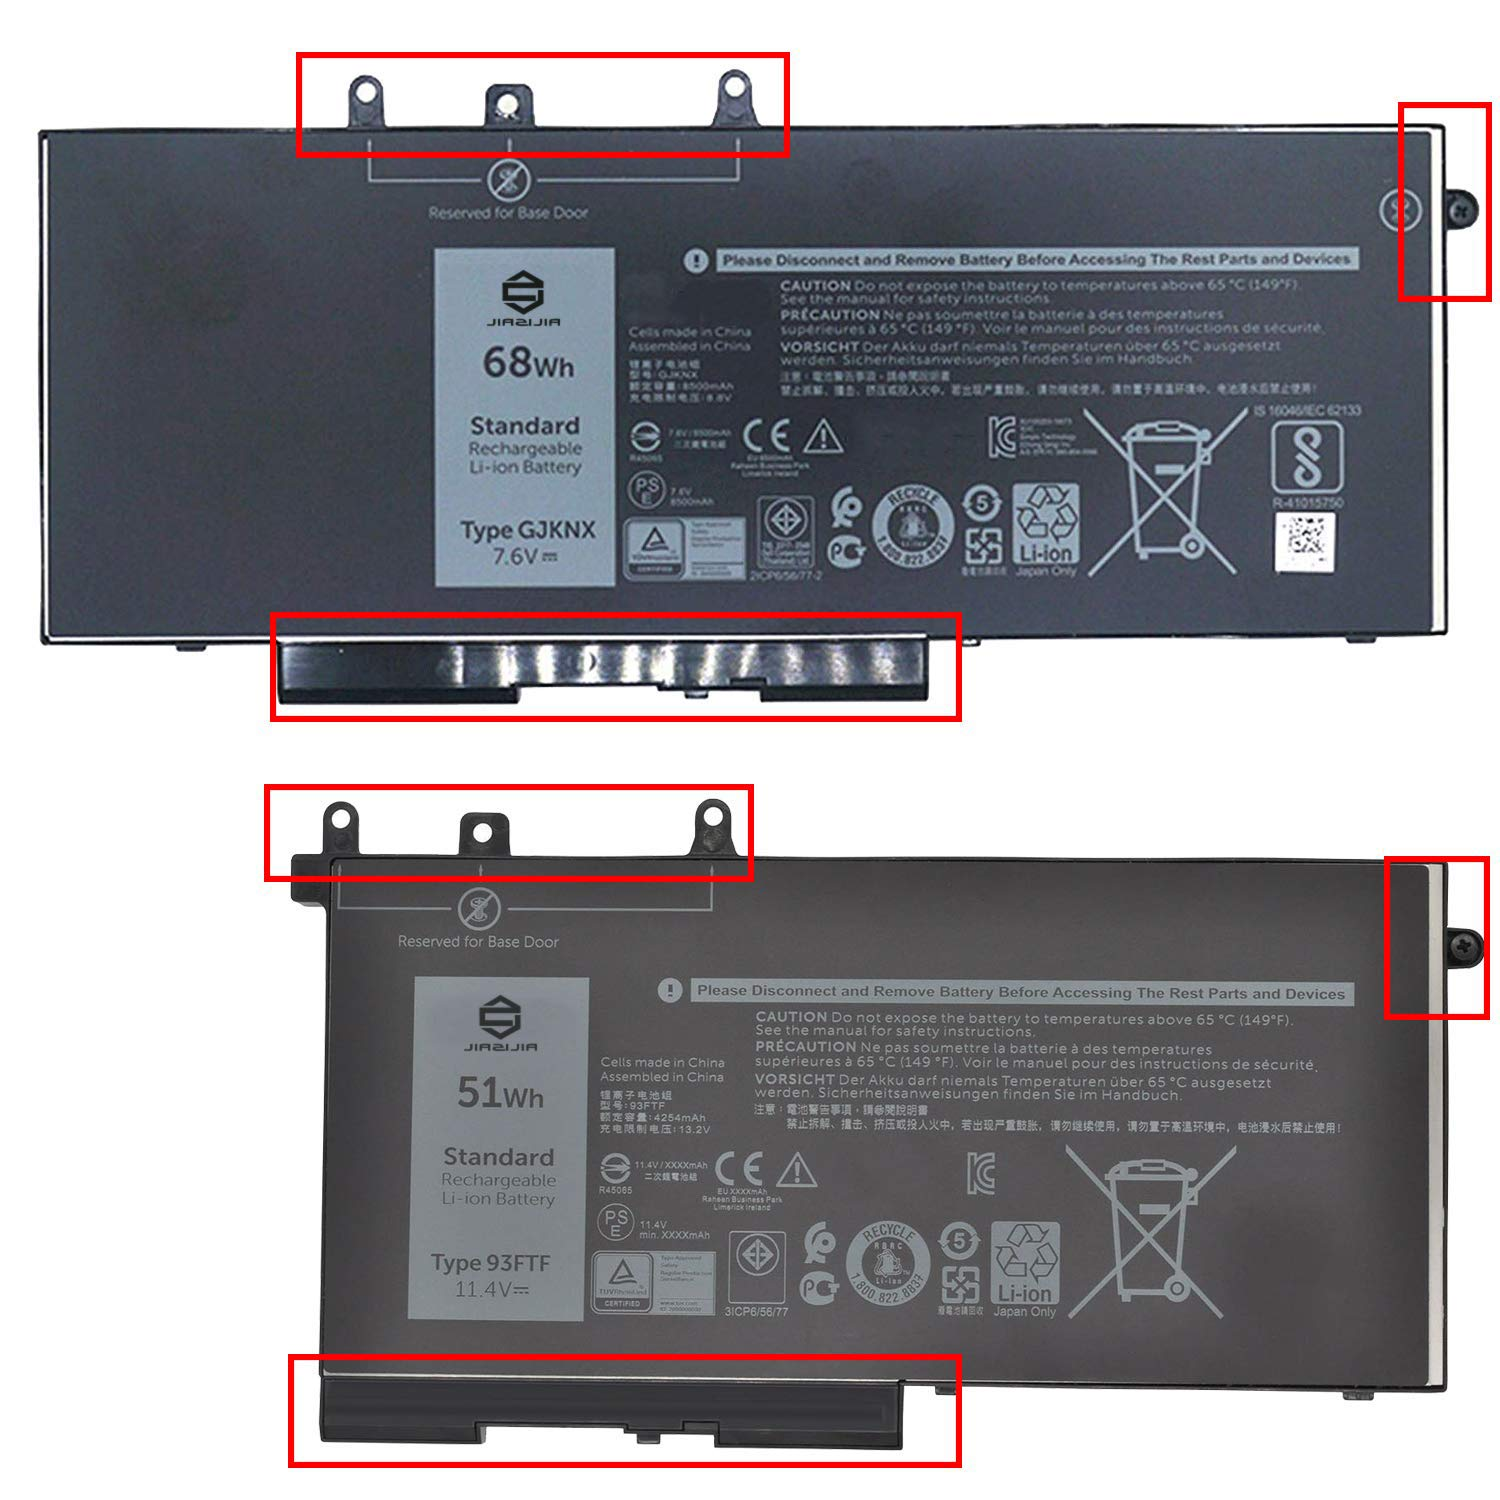 JIAZIJIA GJKNX Laptop Battery Replacement for Dell Latitude 14 5480 E5480 15 5580 E5580 14 5490 E5490 15 5590 E5590 Precision 3520 3530 Series 93FTF 3DDDG GD1JP DY9NT 5YHR4 7.6V 68Wh 8500mAh by JIAZIJIA (Image #4)